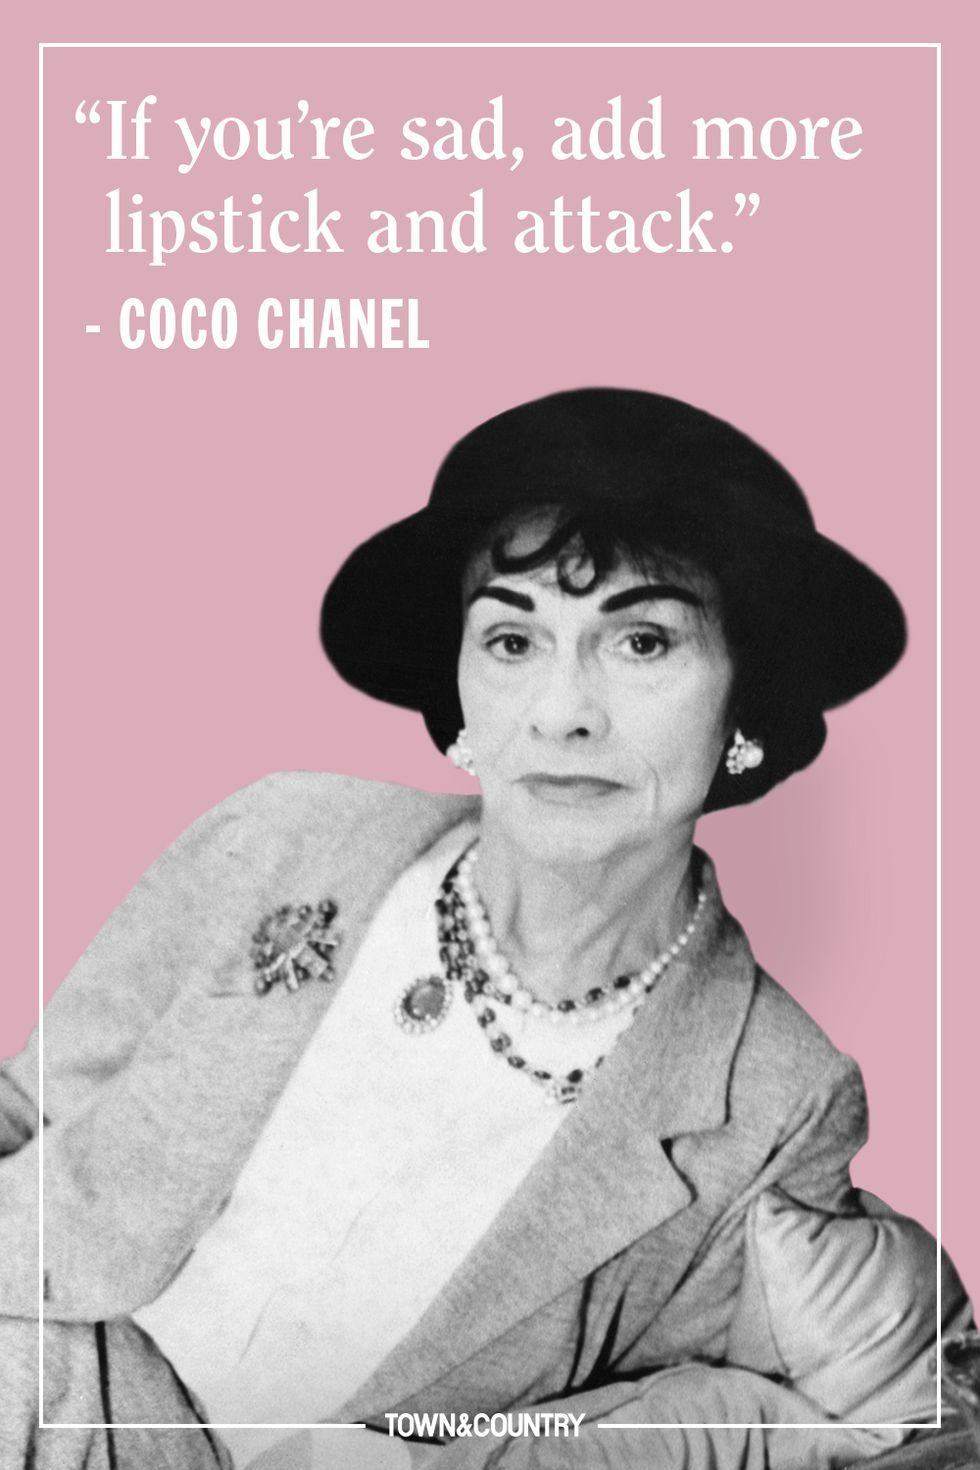 25 Coco Chanel Quotes Every Woman Should Live By - Best Coco Chanel